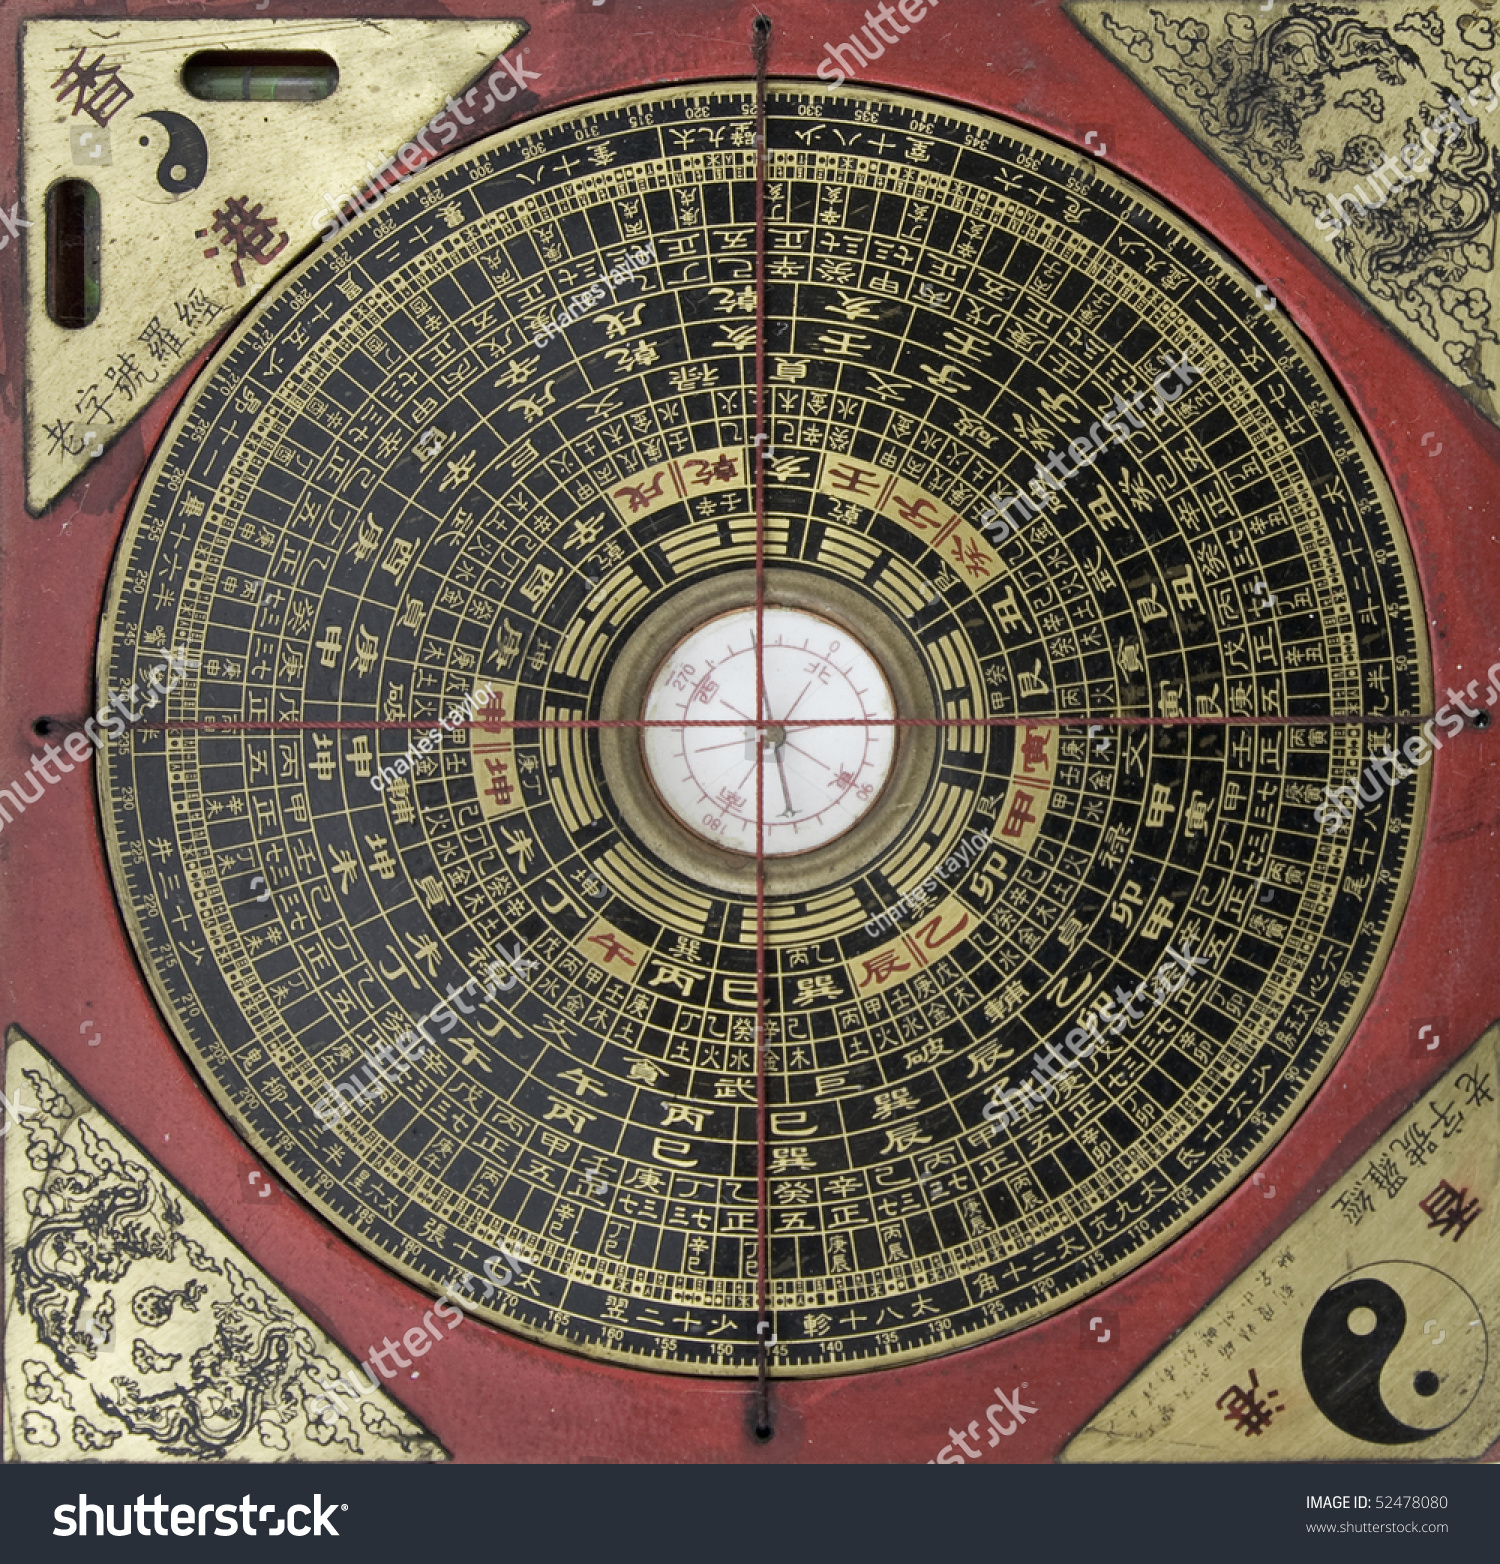 Old Chinese Compass Stock Photo 52478080 : Shutterstock